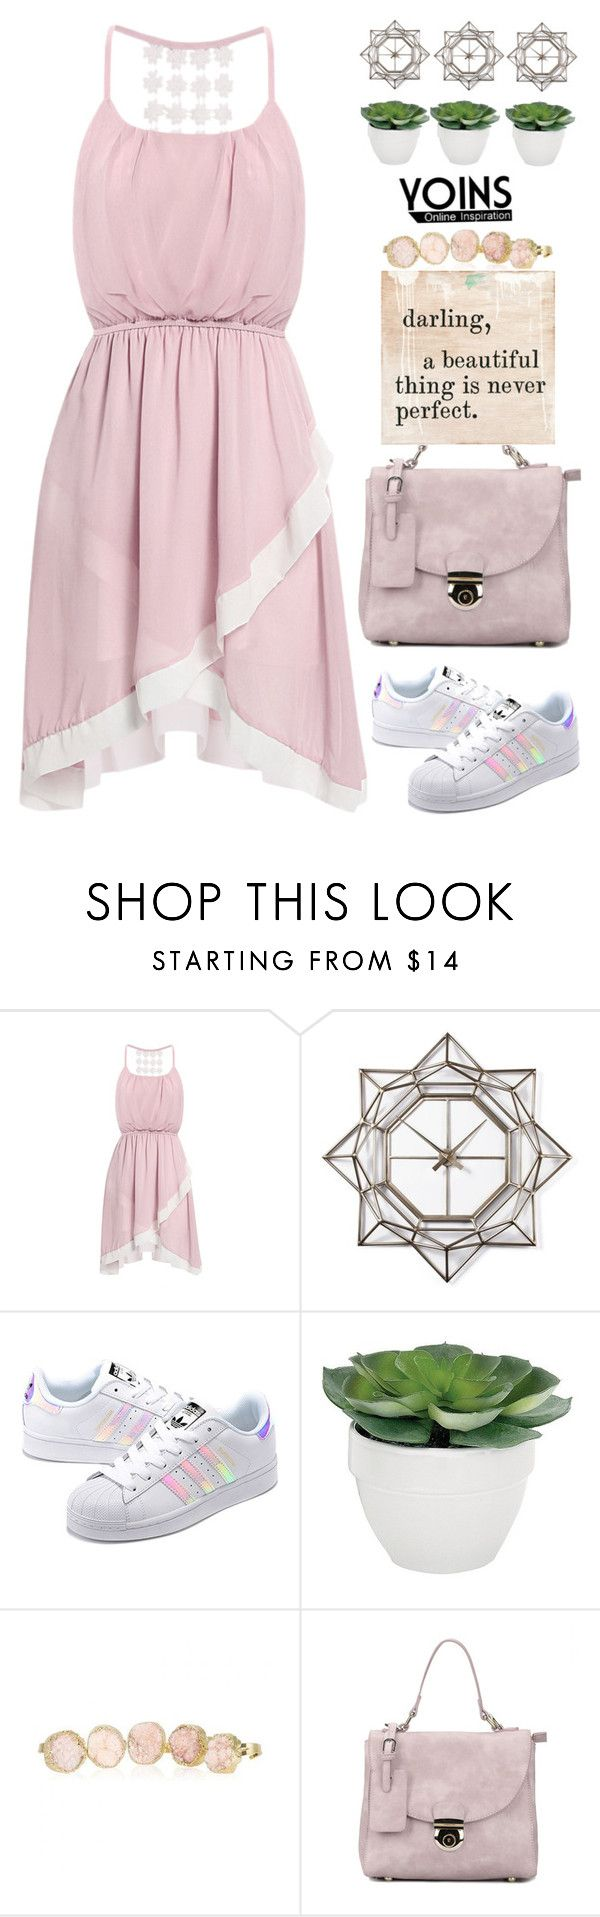 """Yoins (15)"" by itsybitsy62 ❤ liked on Polyvore featuring WALL, adidas Originals, Torre & Tagus, Sugarboo Designs, yoins, yoinscollection and loveyoins"